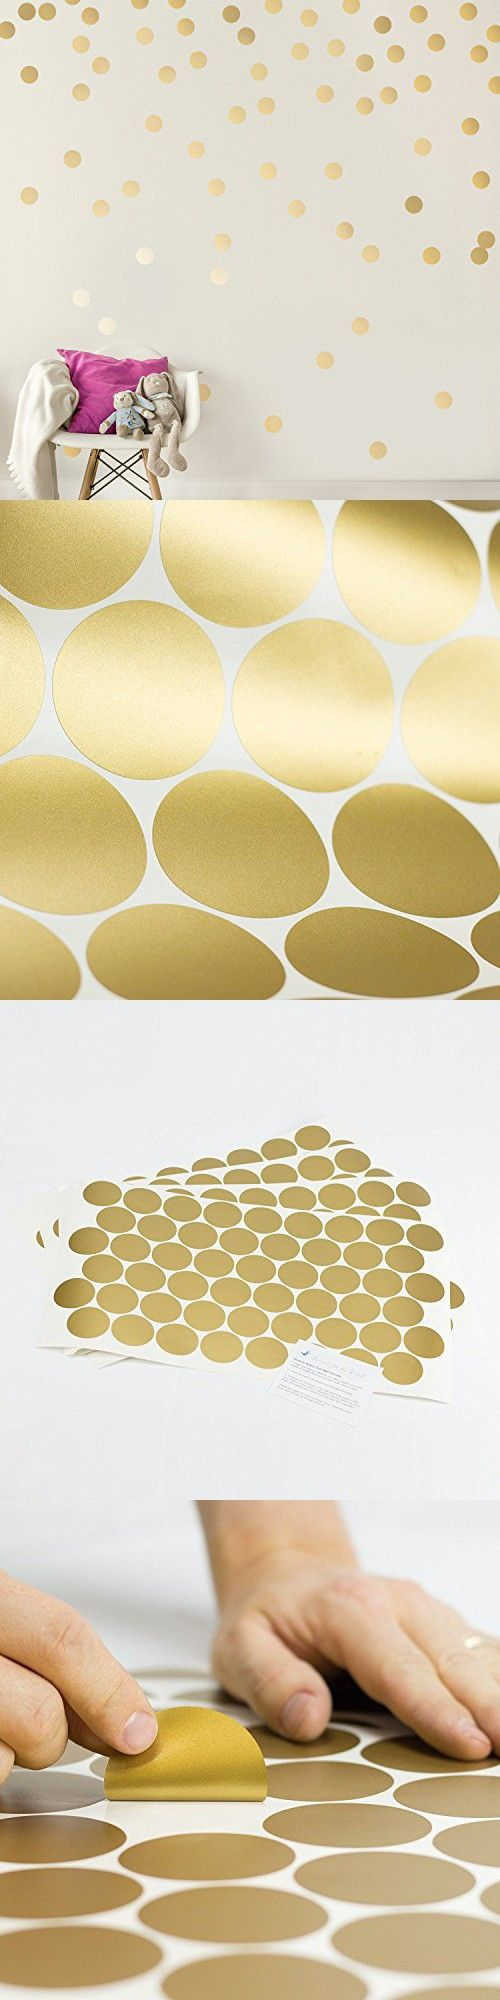 Easy Peel   Stick Gold Wall Decal Dots - 2 Inch (200 Decals) - Safe on Walls & Paint - Metallic Vinyl Polka Dot Decor - Round Circle Art Glitter Stickers - Large Paper Sheet Baby Nursery Room Set